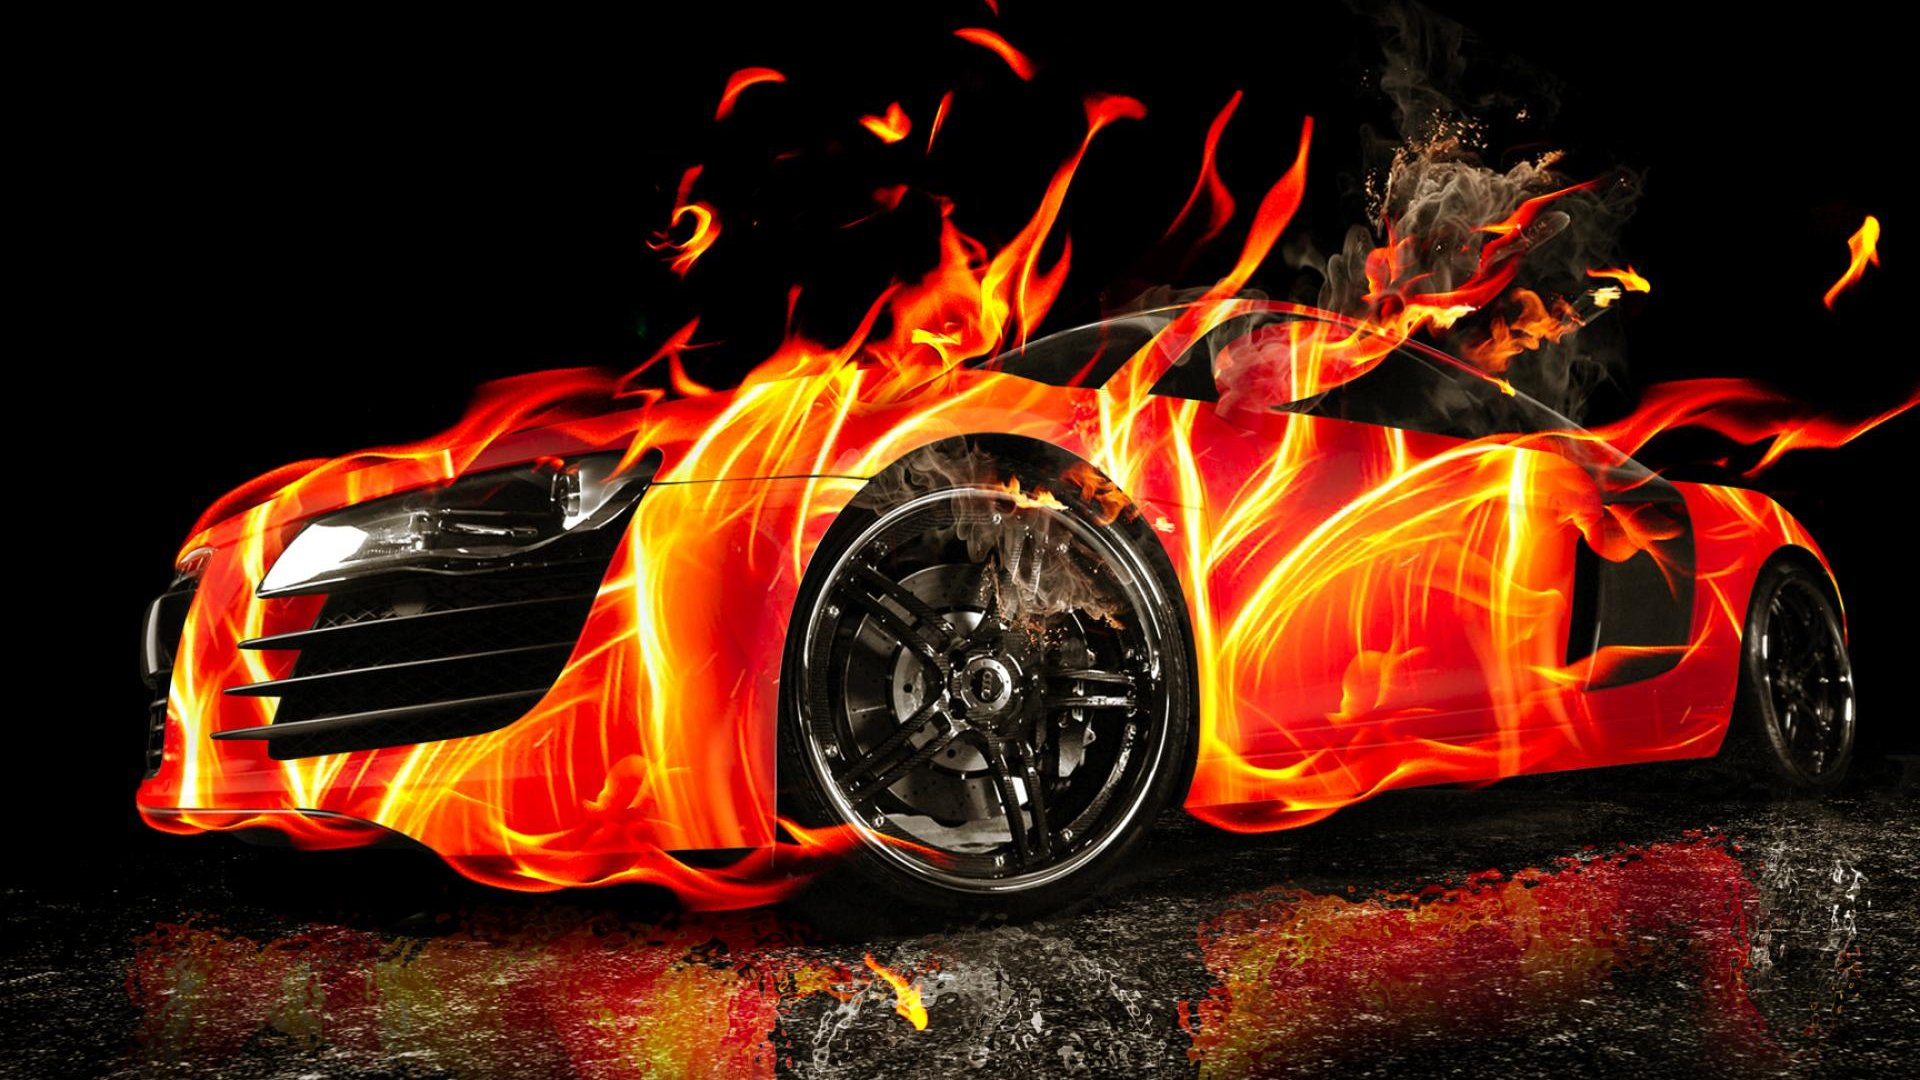 Best 3D Cars HD Free desktop Wallpapers